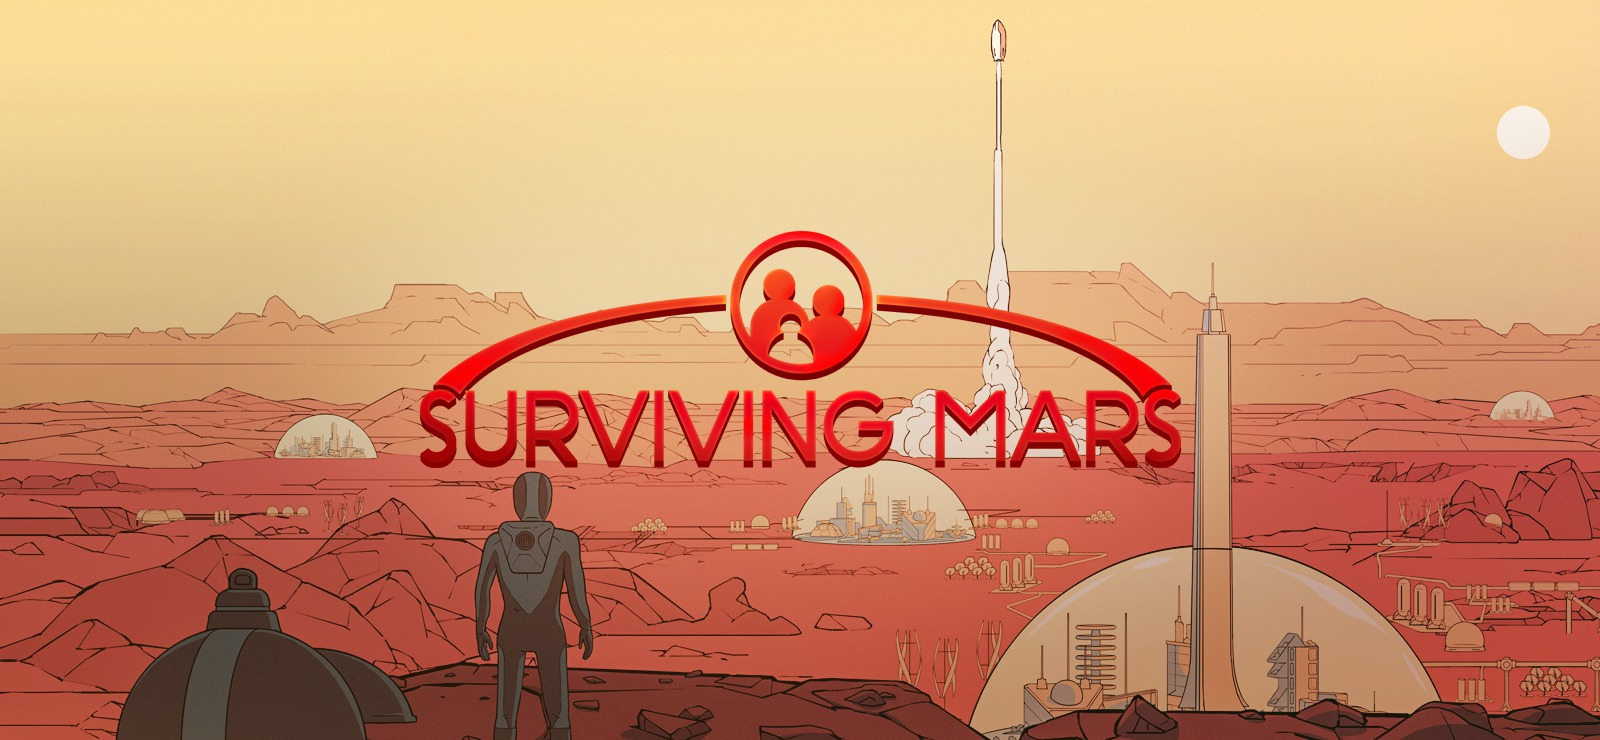 Bulgarian computer game Surviving Mars top seller on Steam